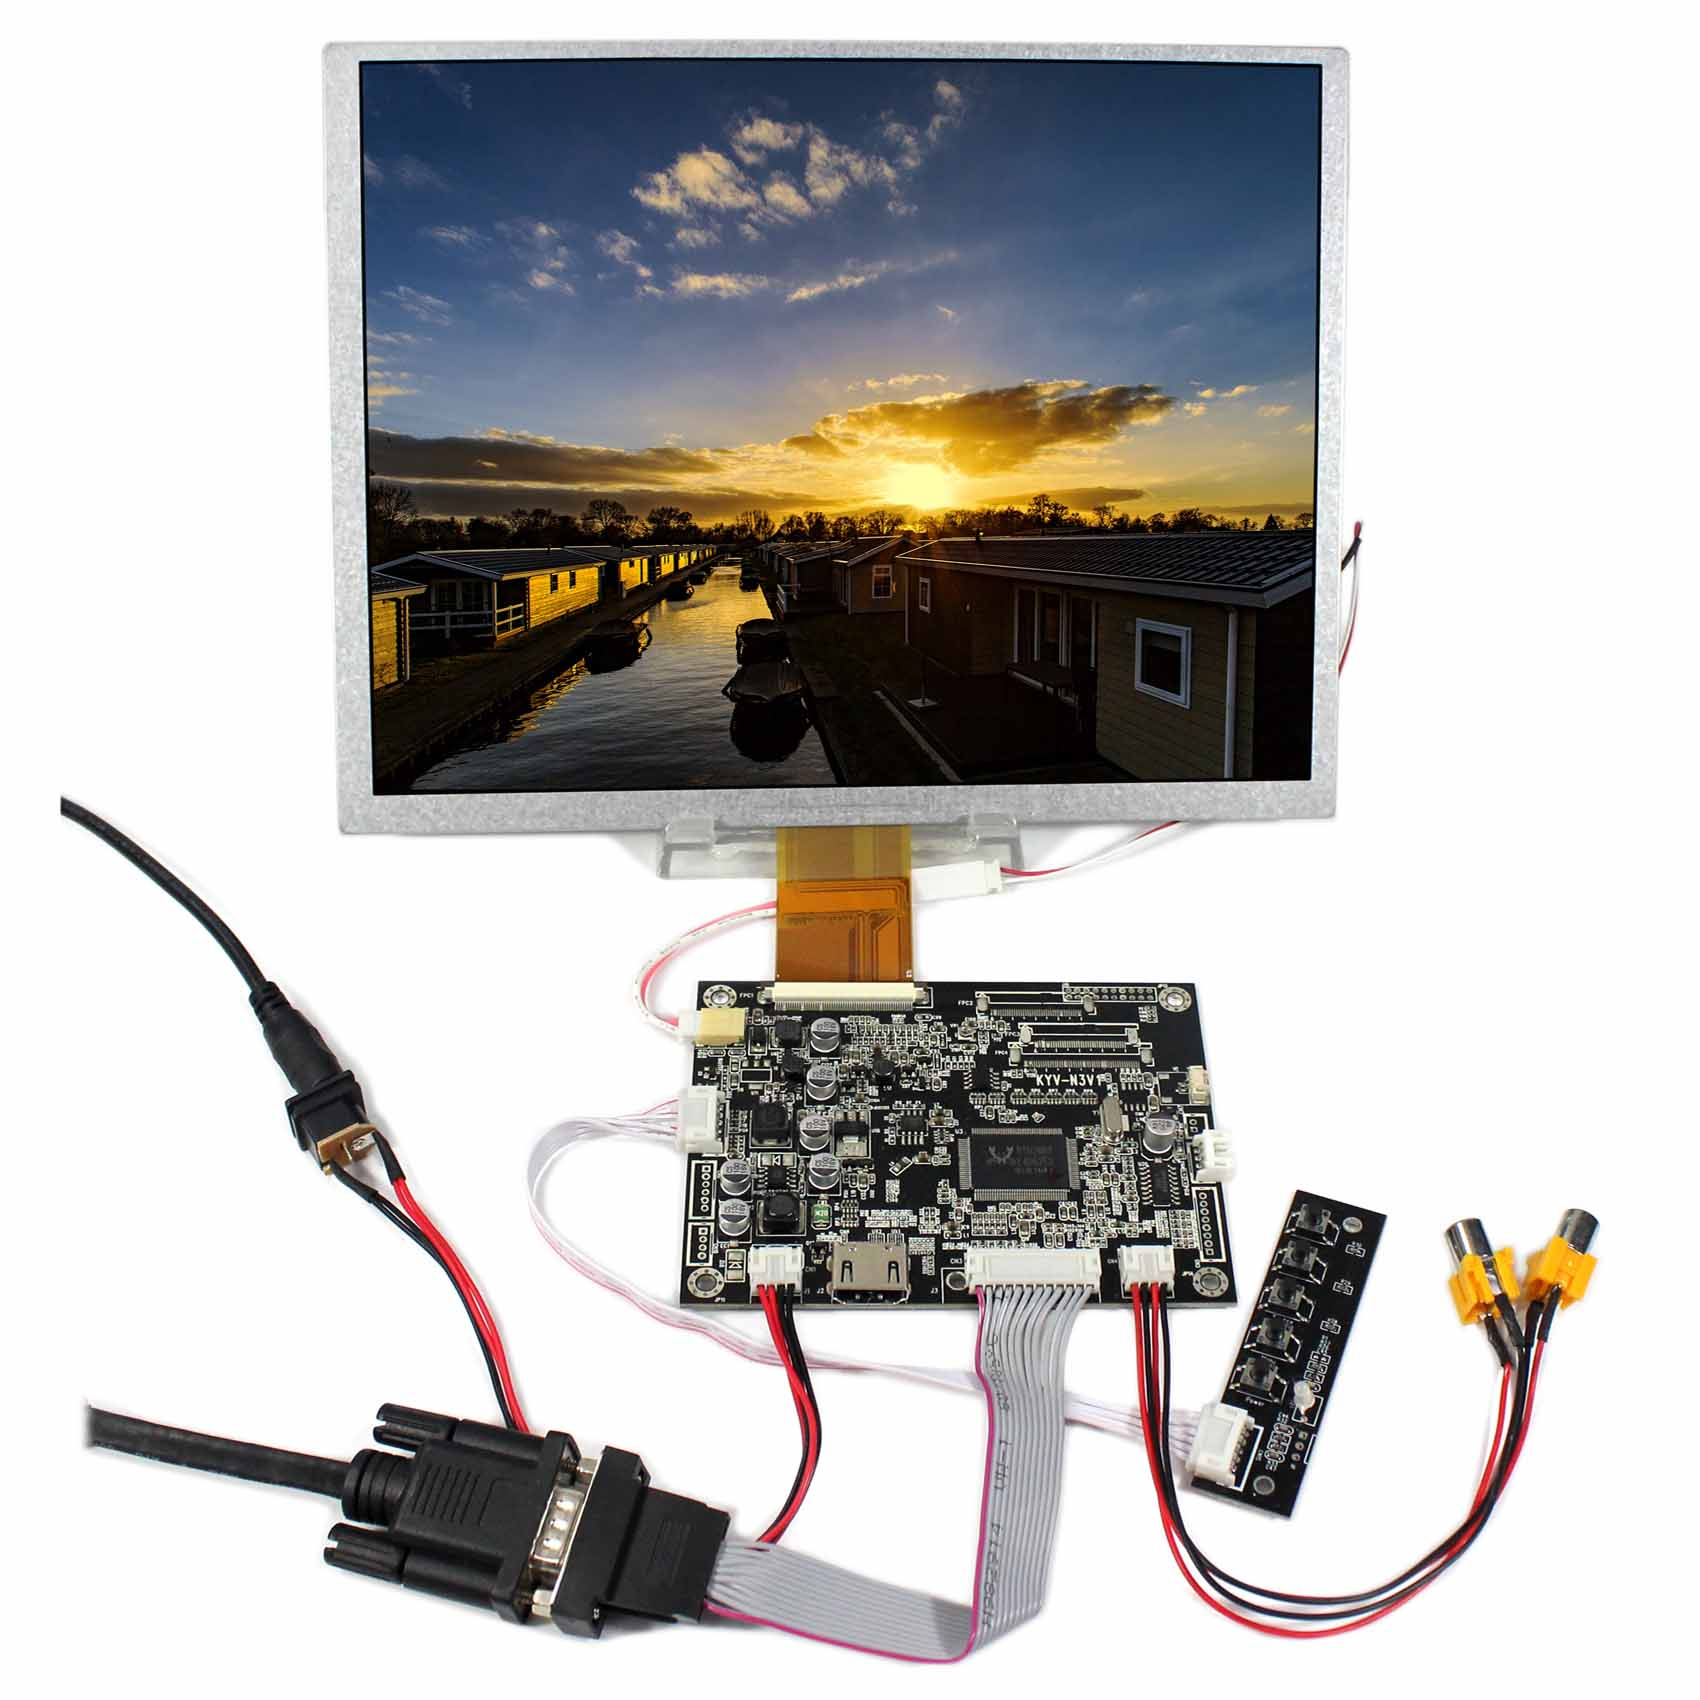 HDMI VGA AV Audio LCD Controller Board KYV-N3 V1 10.4inch LSA40AT9001 800x600 LCD Panel vga av lcd controller board kyv n2 v1 8inch 800x600 ej080na 05b lcd with touch panel